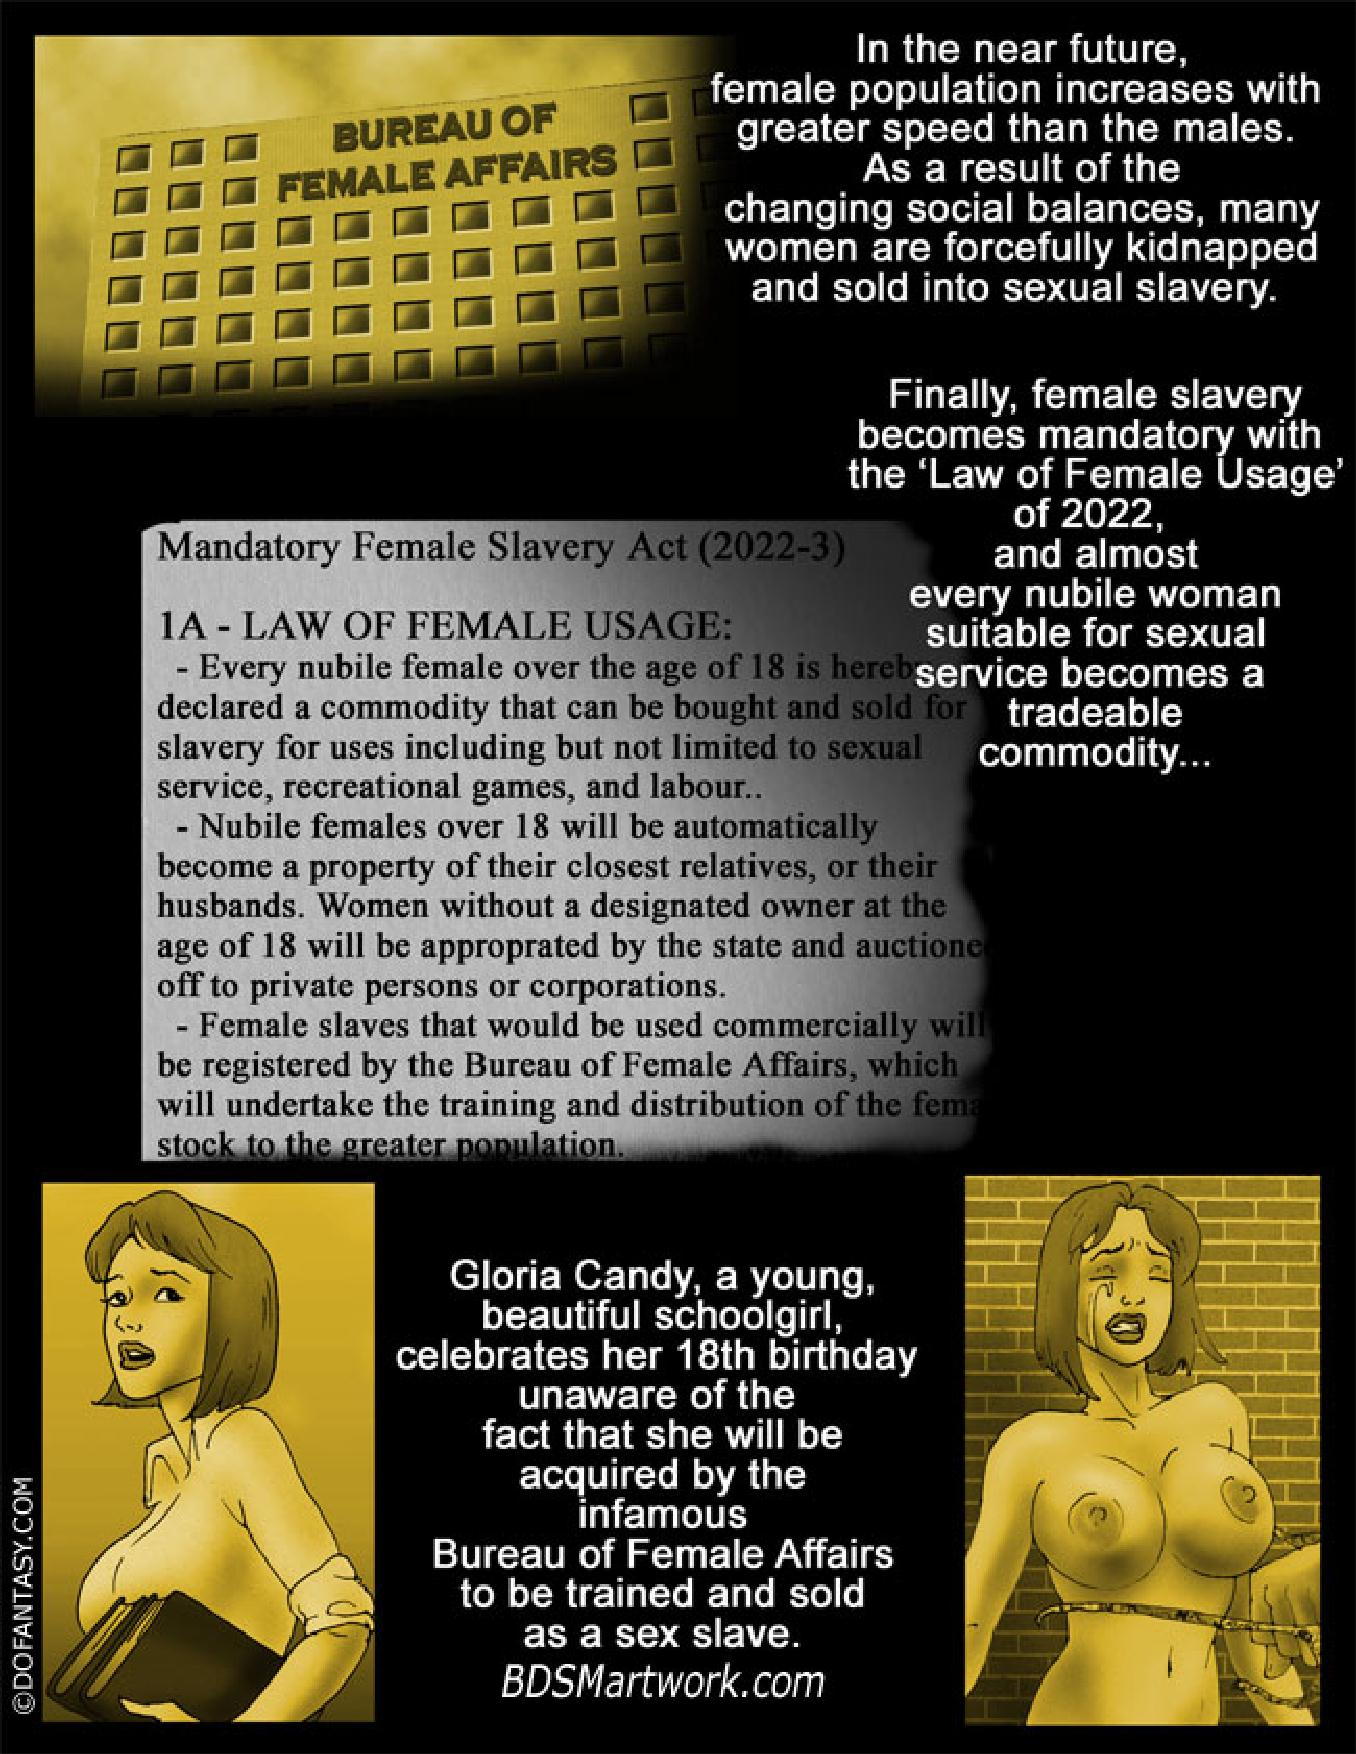 Gloria Candy - Bureau of Female Affairs